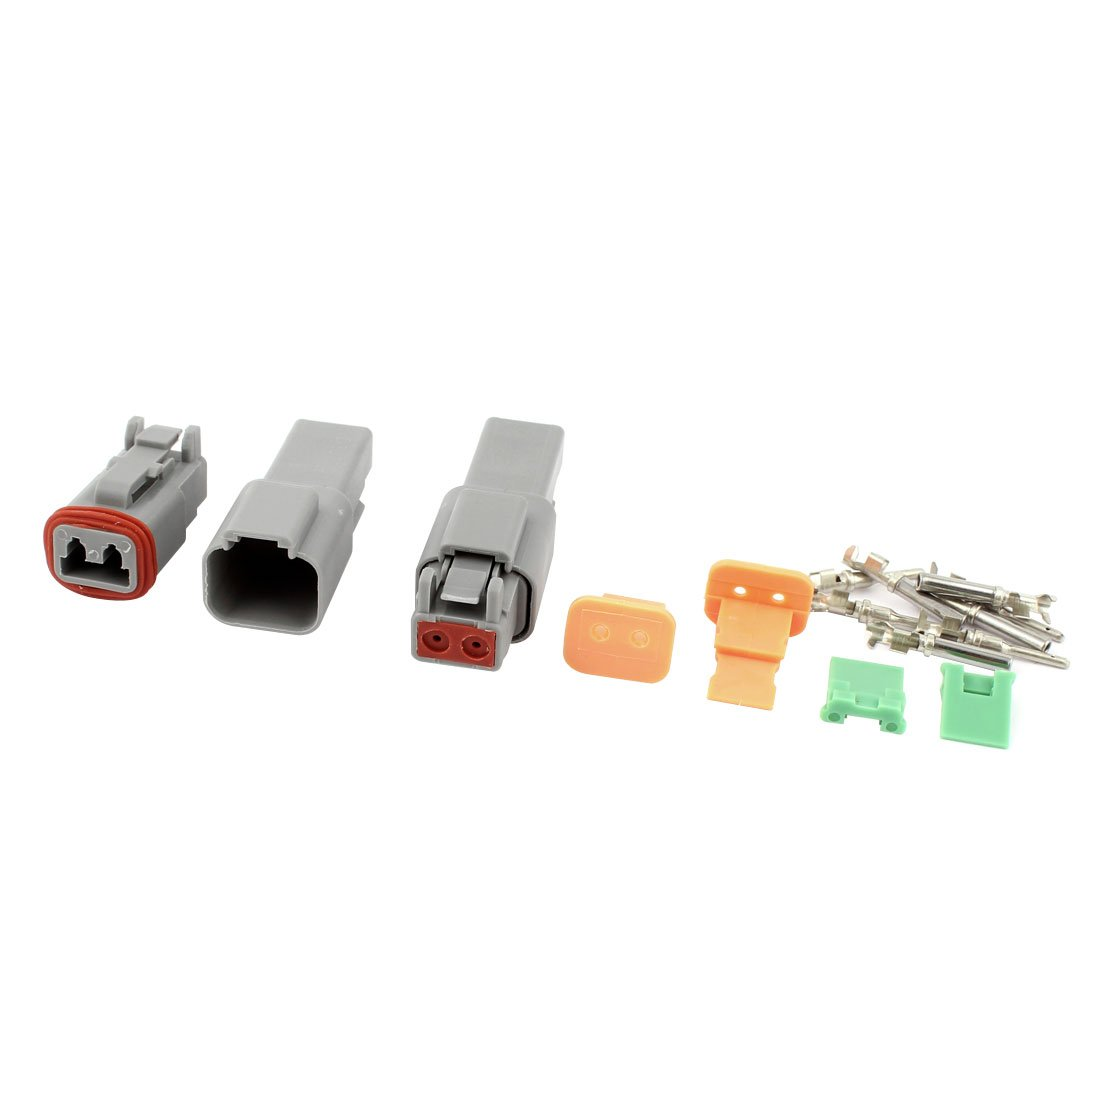 uxcell 2Sets Deutsch DT04-2P/DT06-2S Electric Connector by uxcell